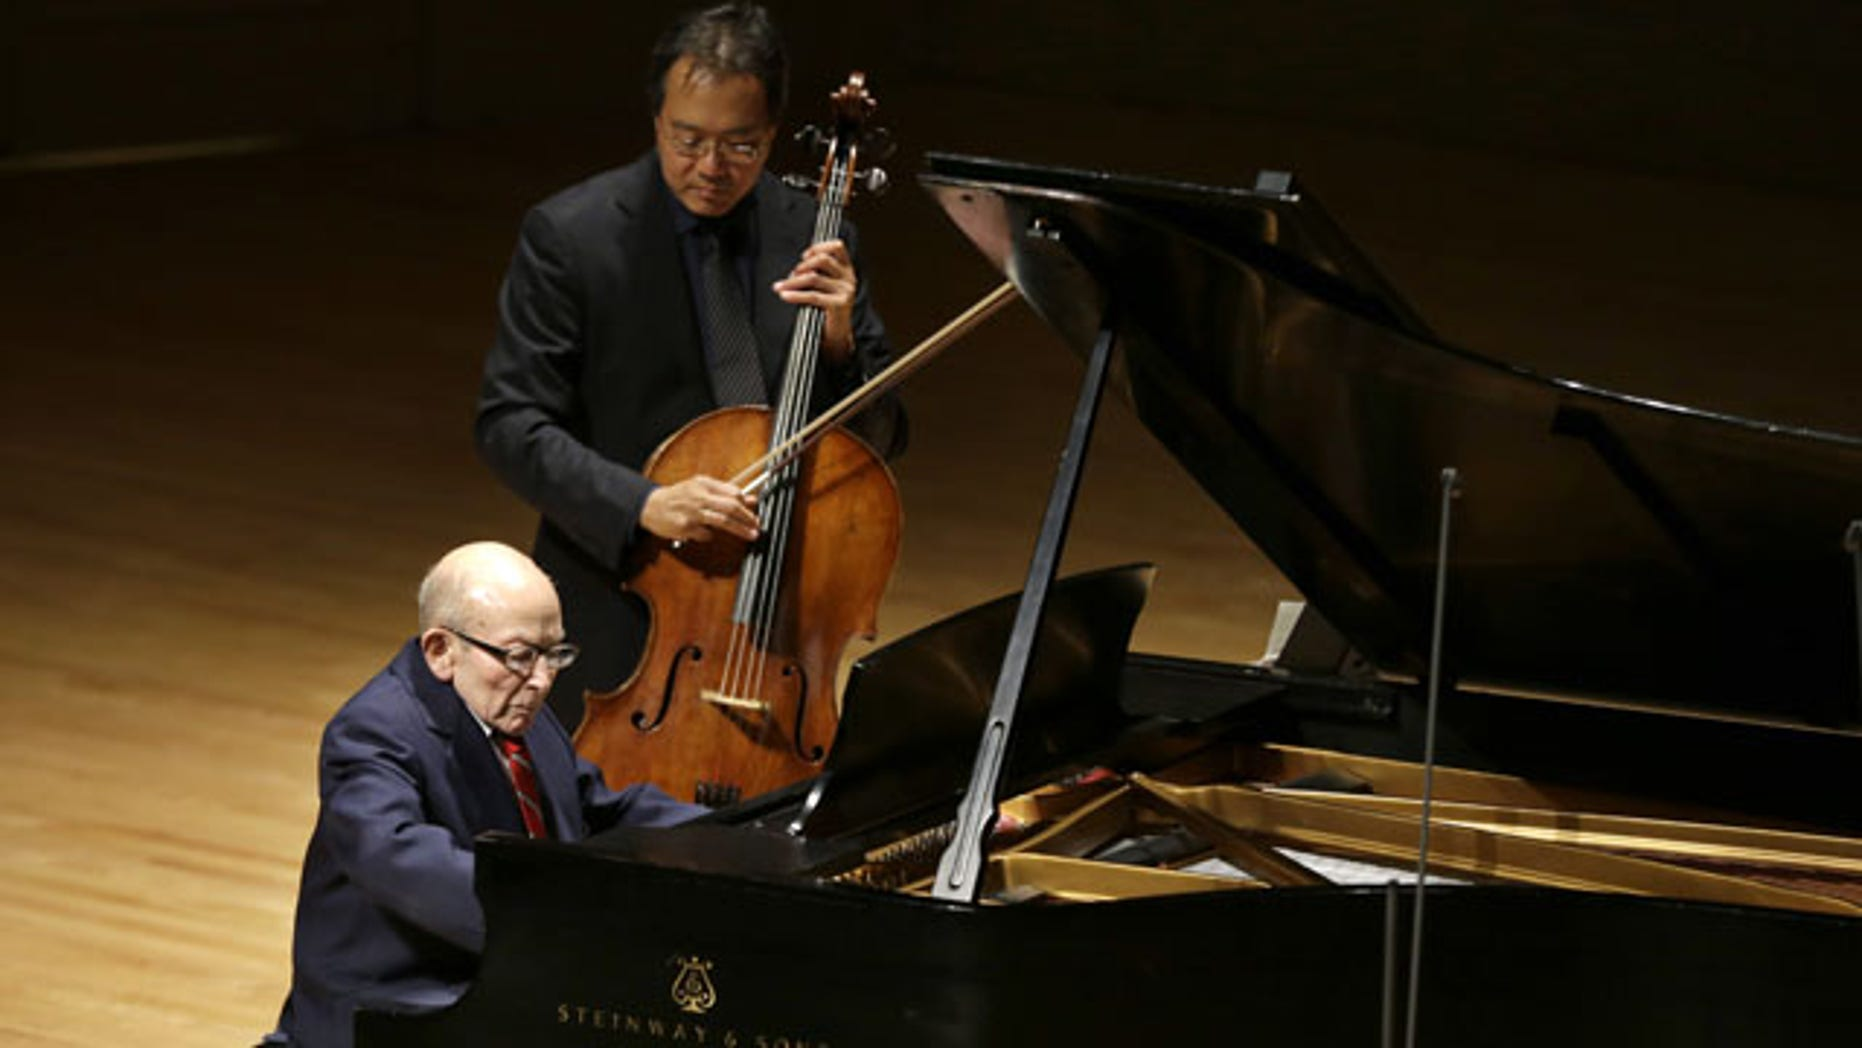 October 22, 2013: Holocaust survivor George Horner, front left, performs with cellist Yo-Yo Ma, top, on stage at Symphony Hall in Boston. The 90-year-old pianist made his orchestral debut with Ma, where they played music composed 70 years ago at the Nazi concentration camp where Horner was imprisoned. (AP Photo/Steven Senne)